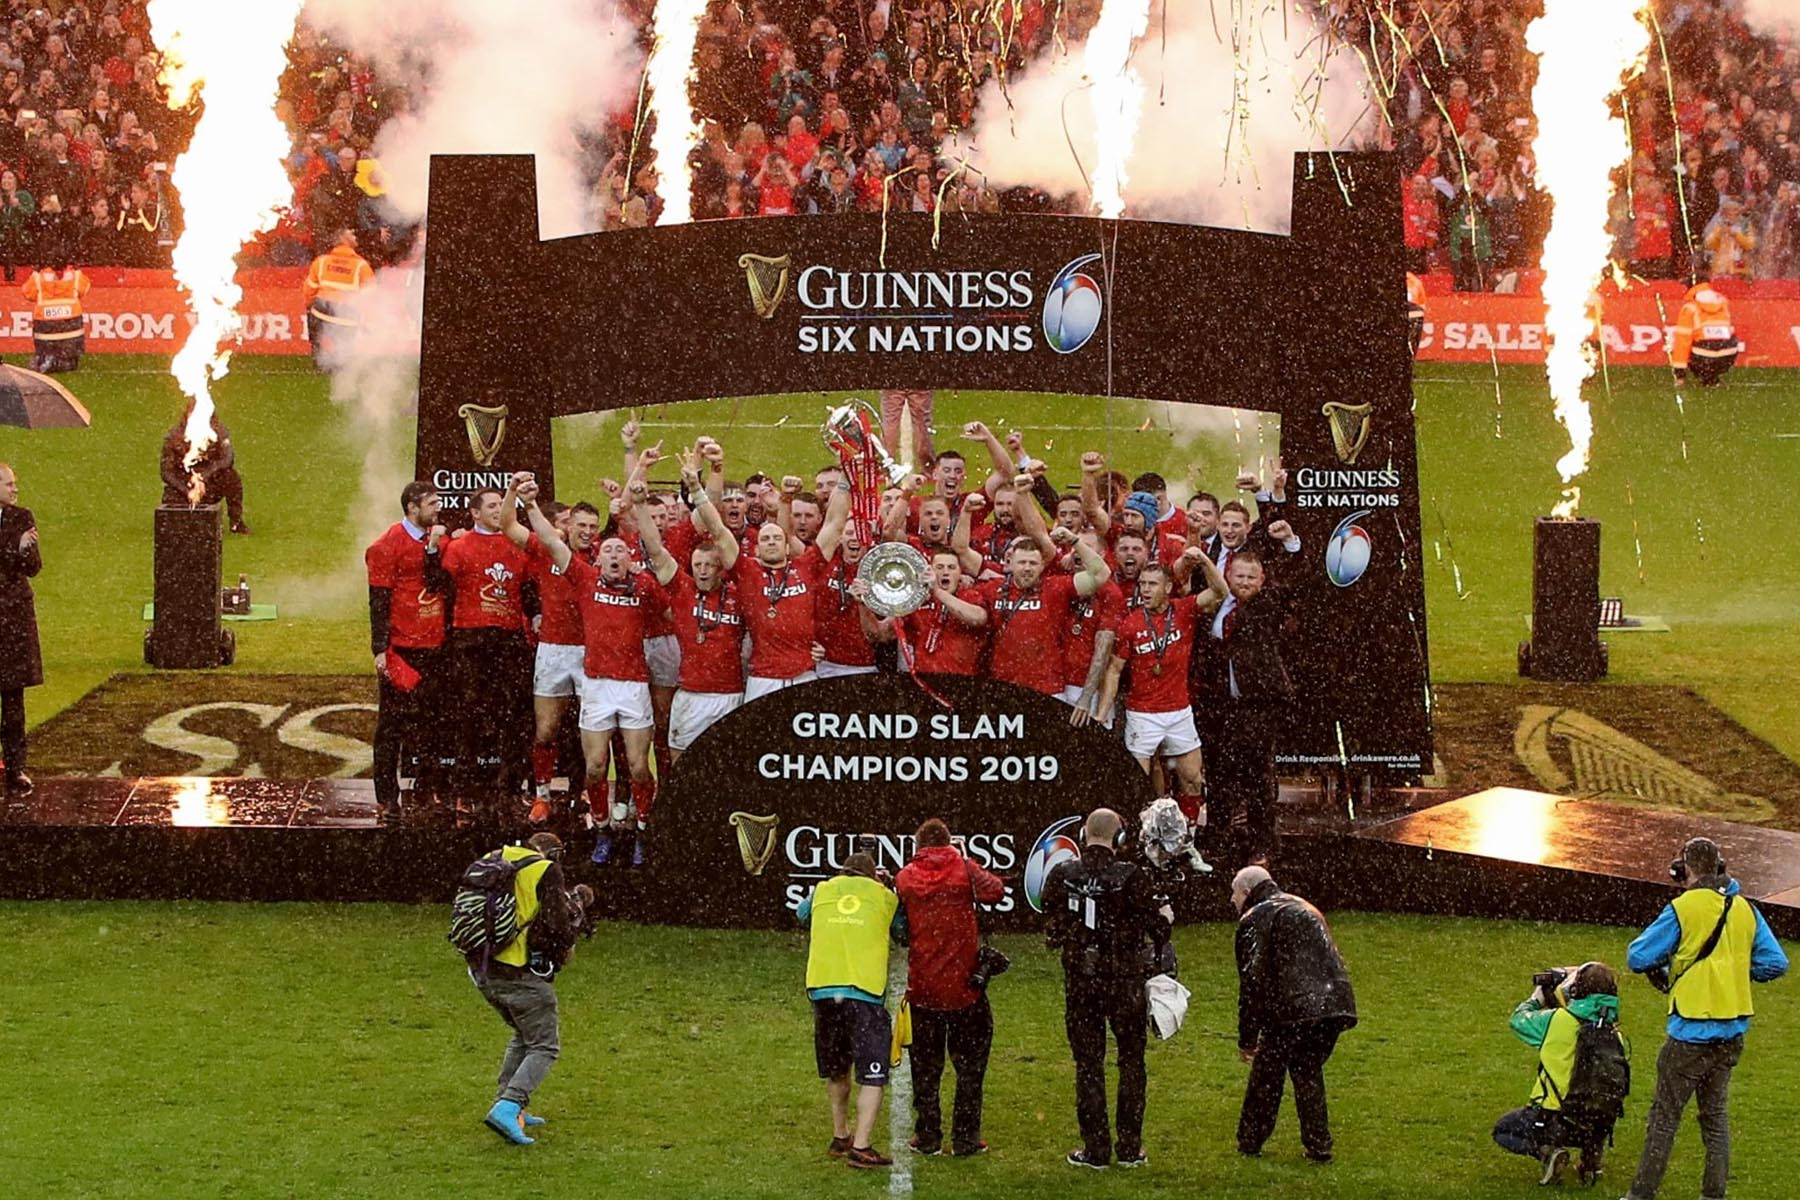 Grand Slam Champions Six Nations 2019